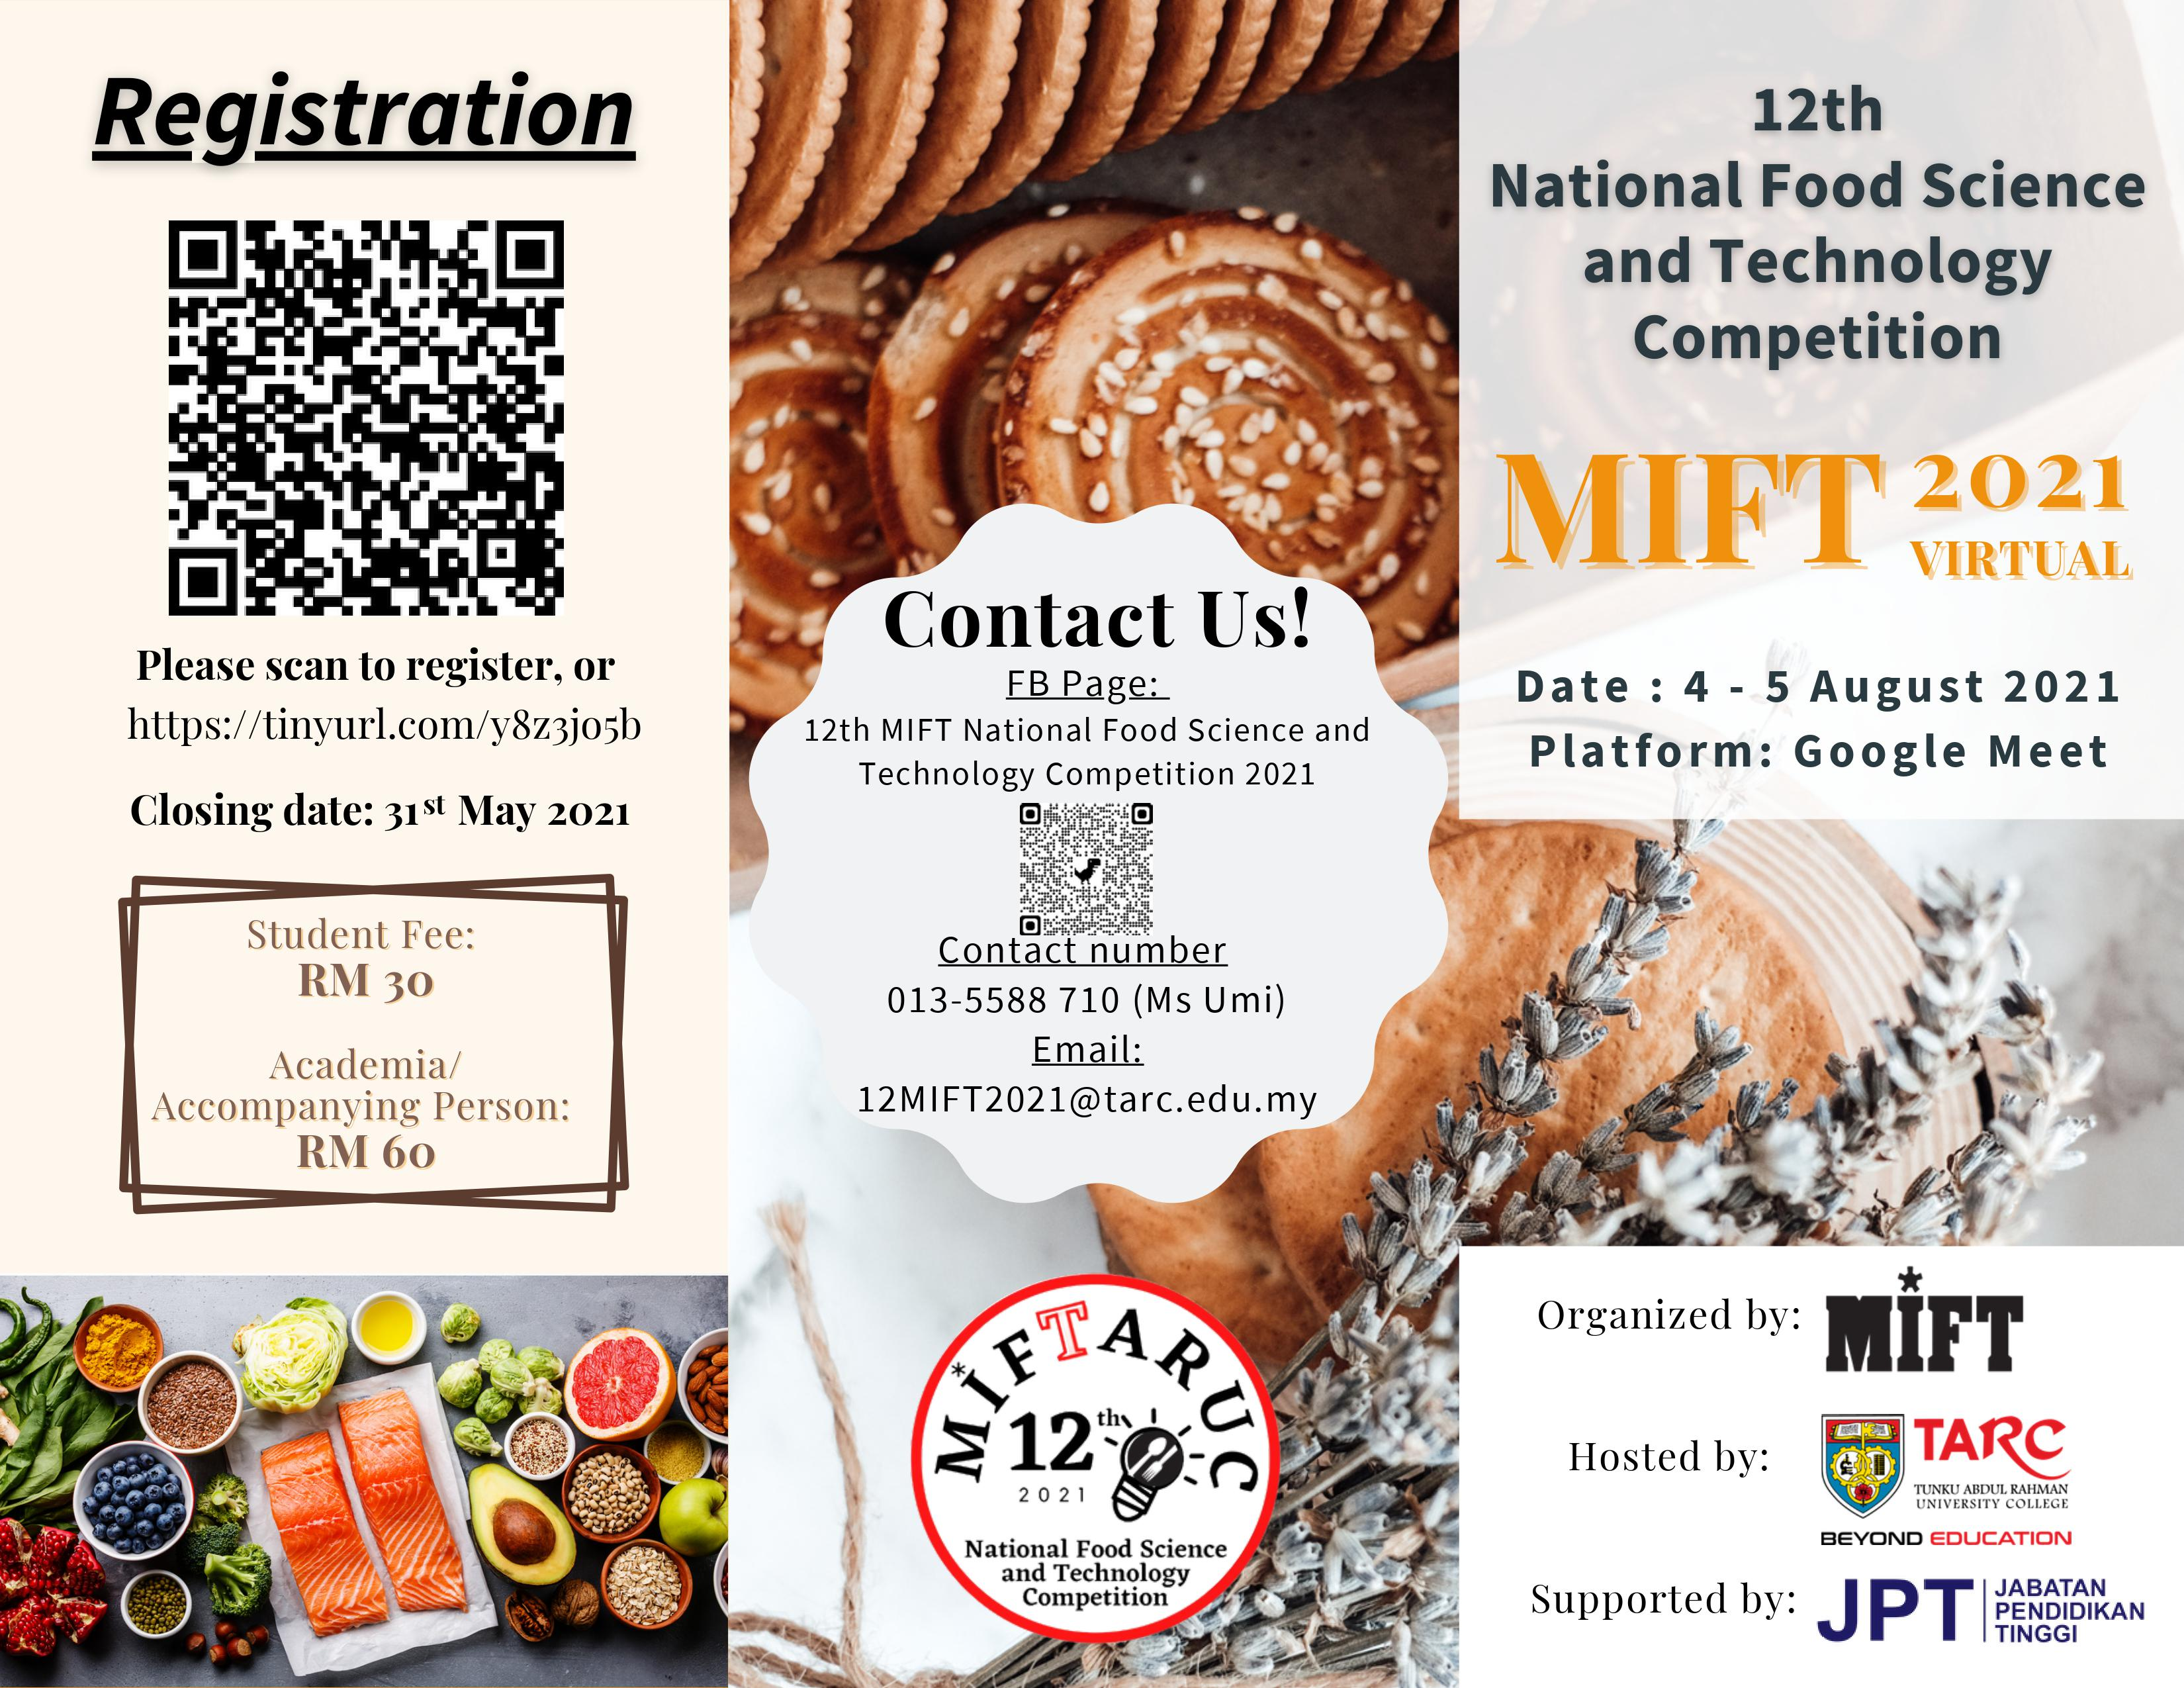 12TH NATIONAL FOOD SCIENCE AND TECHNOLOGY COMPETITION,MIFT 2021 VIRTUAL, 4 - 5 AUGUST 2021